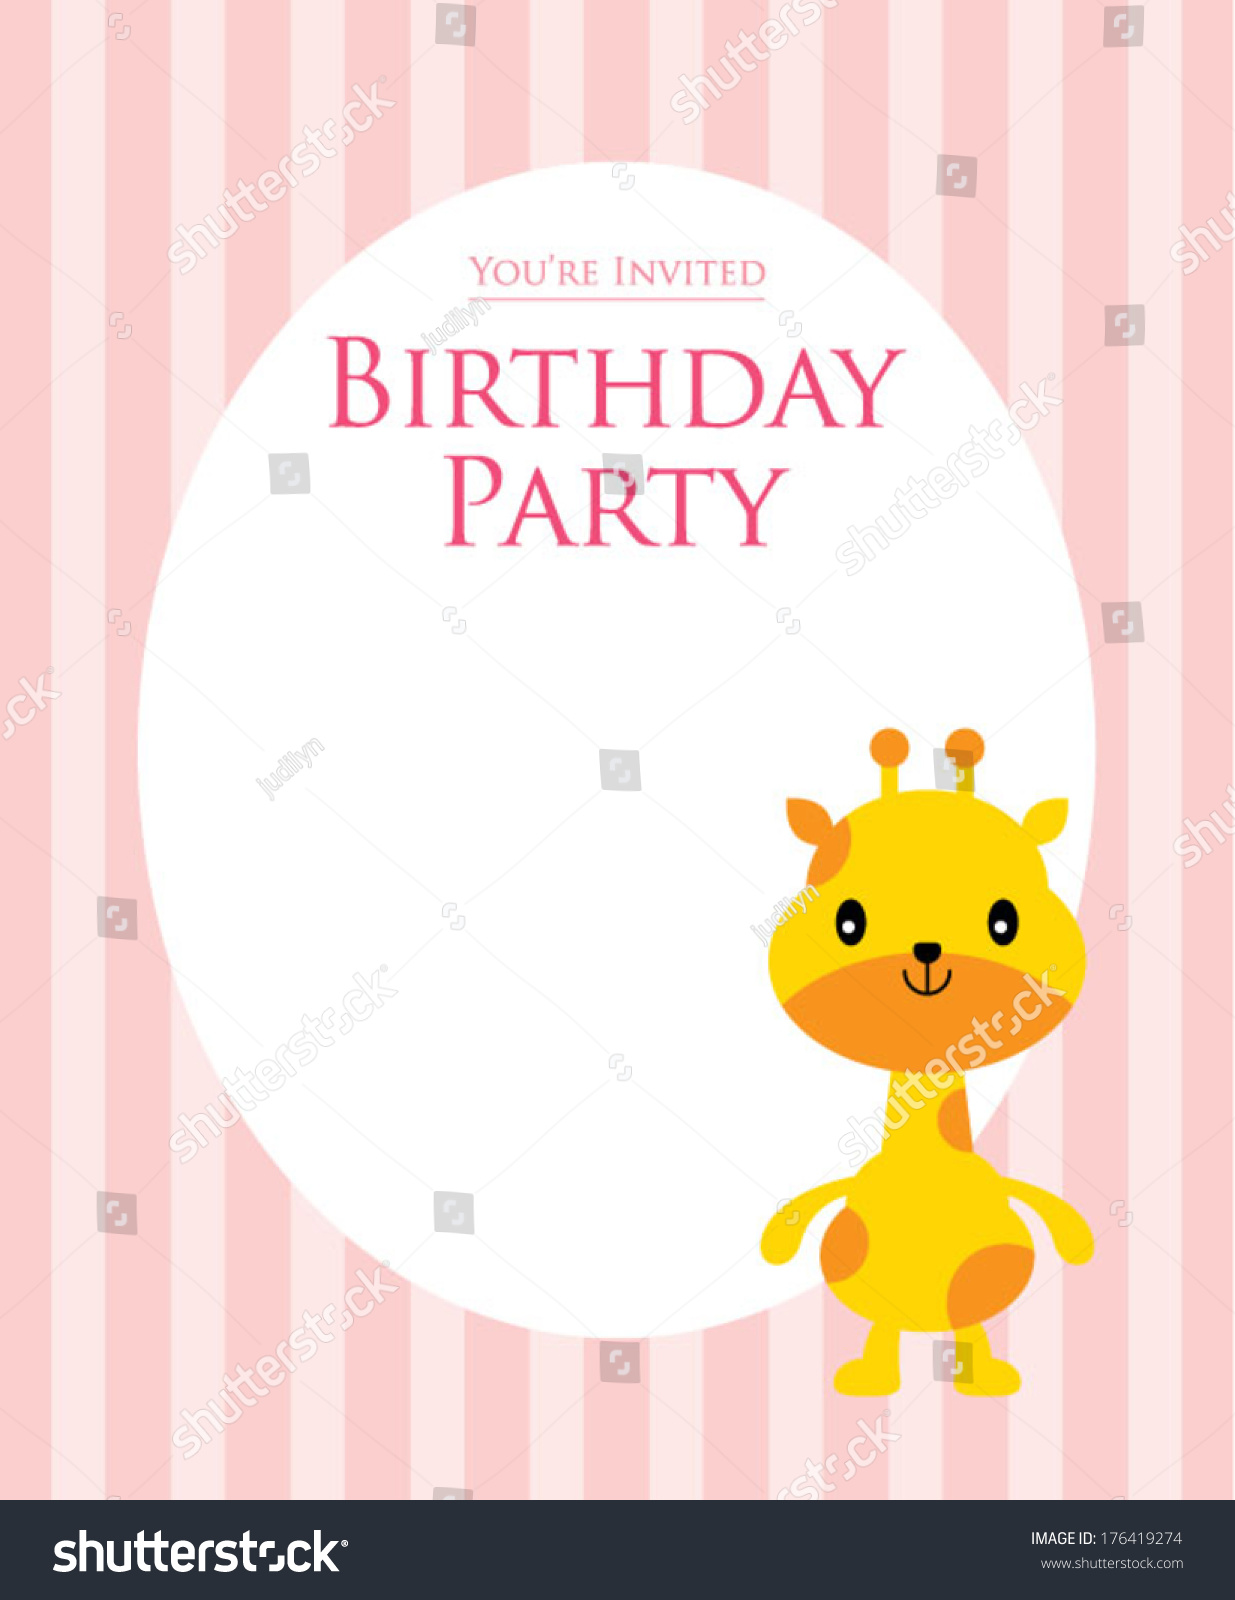 Giraffe Birthday Invitation Card Stock Vector 176419274 - Shutterstock